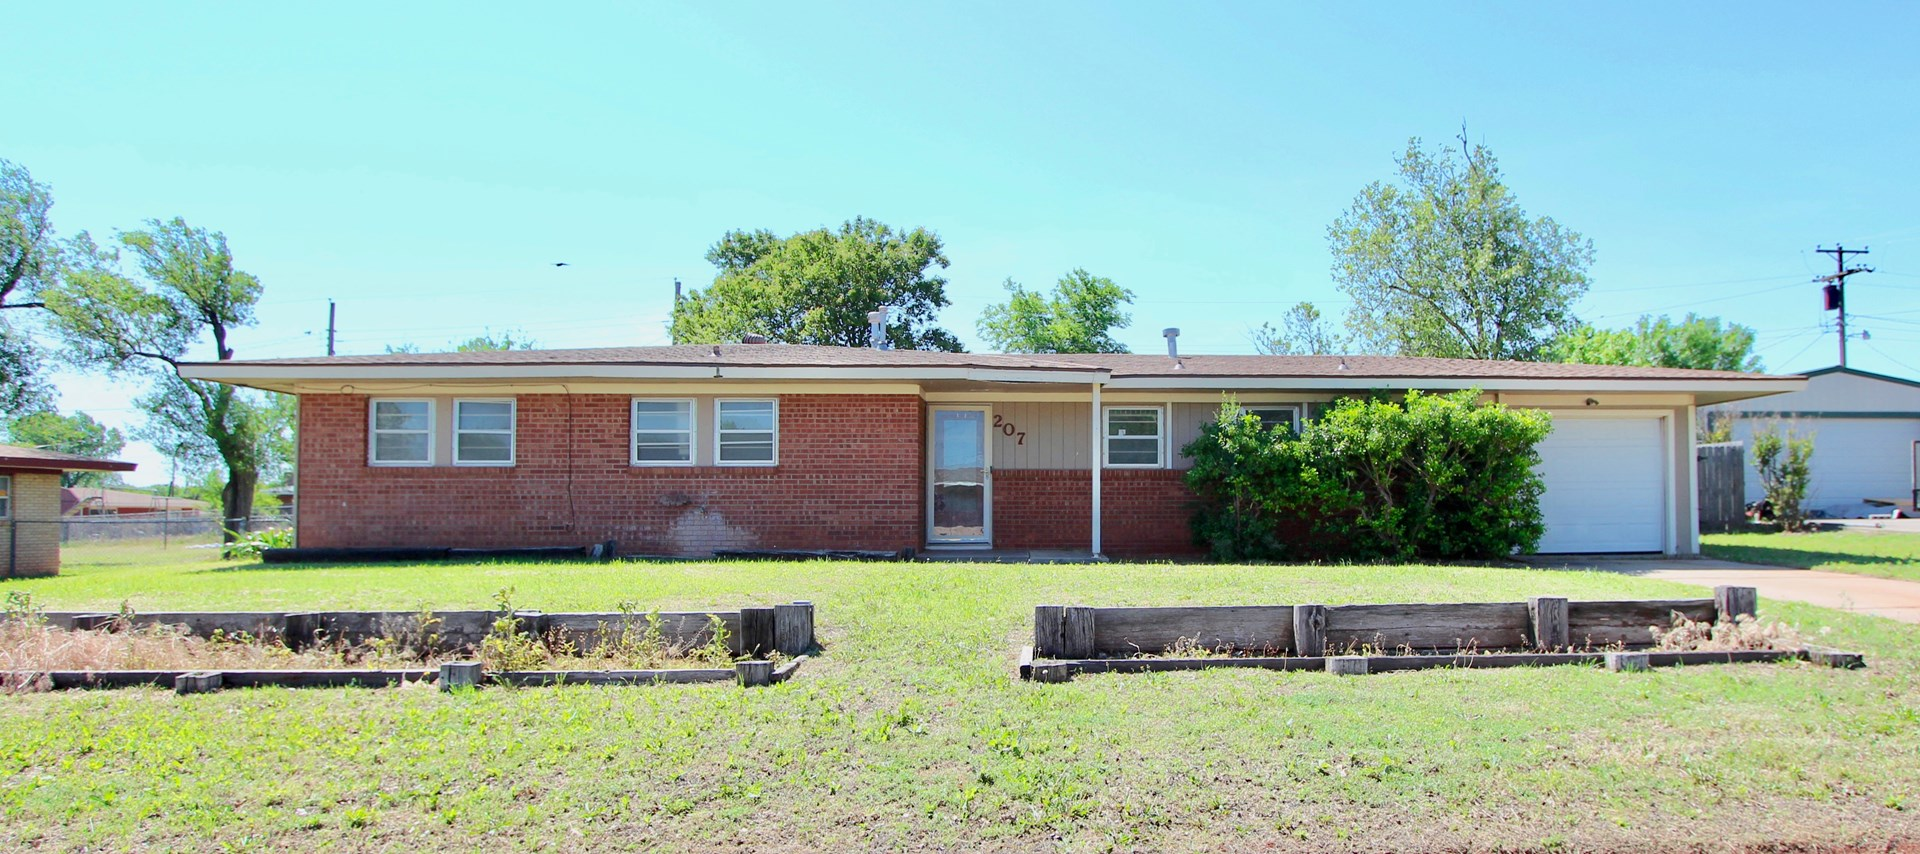 UPDATED HOME FOR SALE IN WESTERN OKLAHOMA